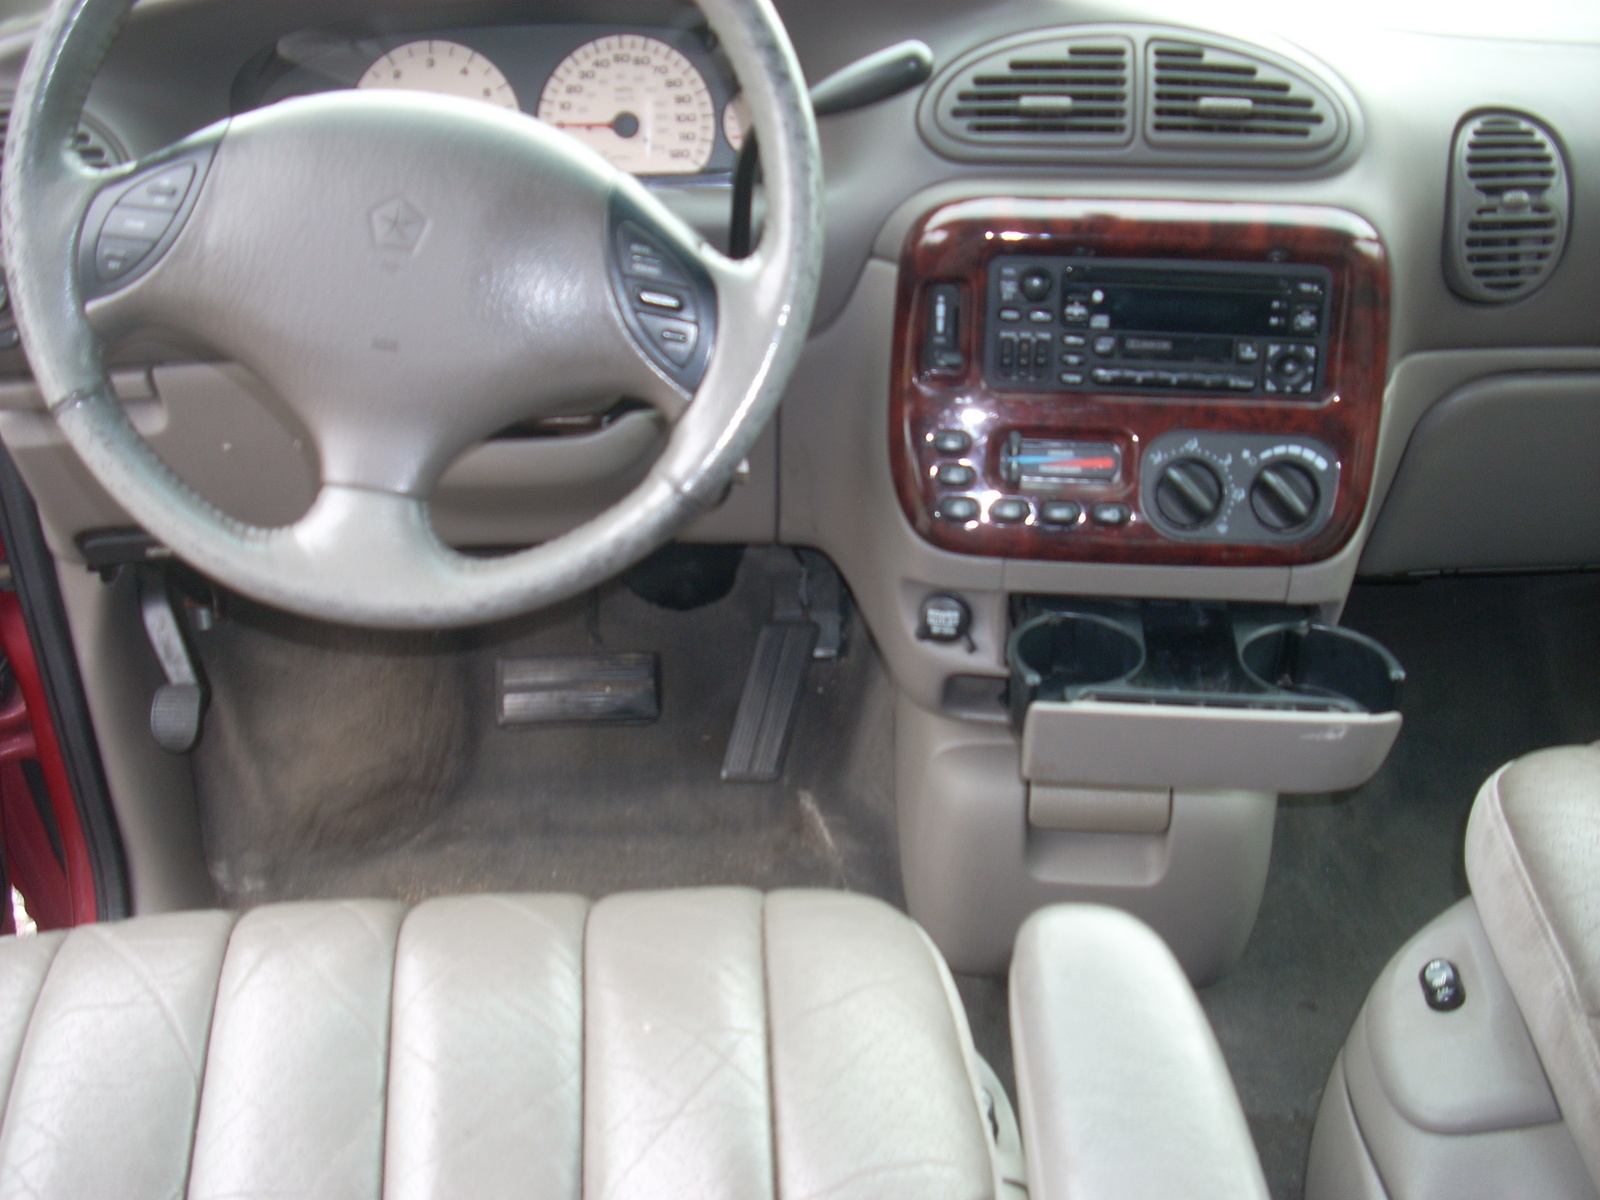 1999 chrysler town country pictures cargurus for 1999 chrysler town and country window problems